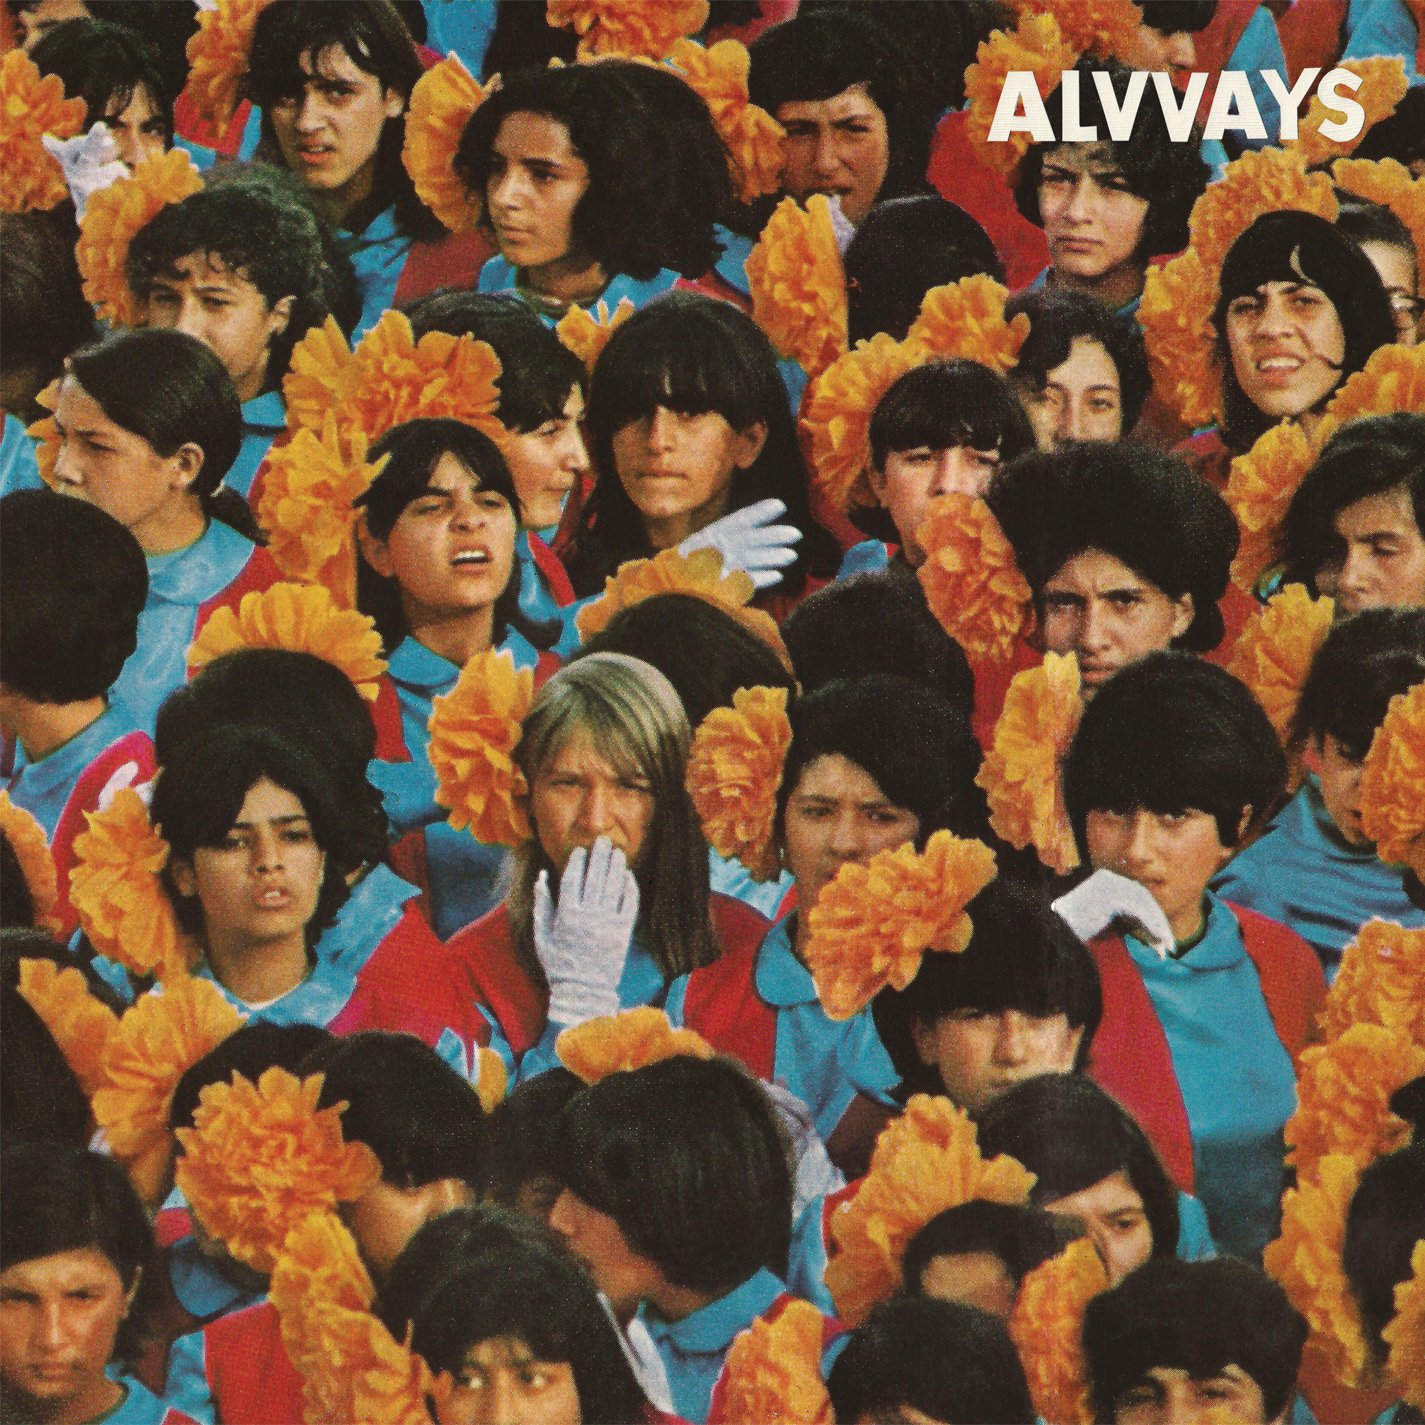 Alvvays (180-Gram Colored Vinyl w/ download card)